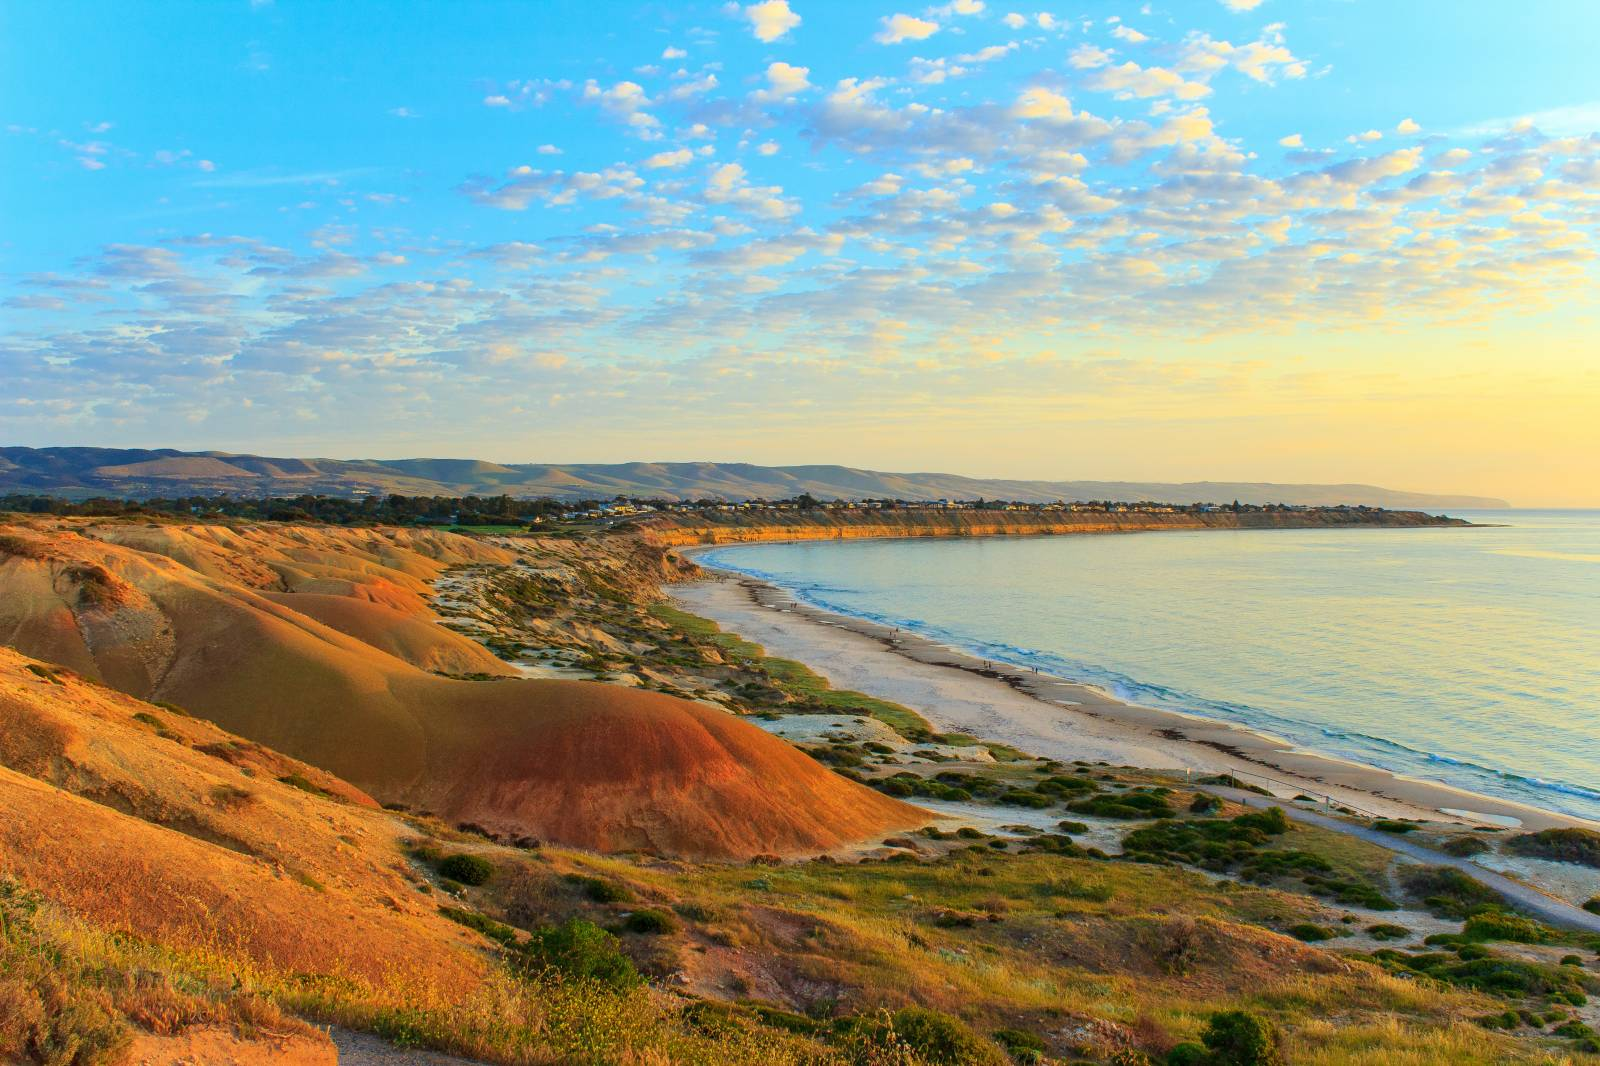 Top 8 Places to Experience - Normanville